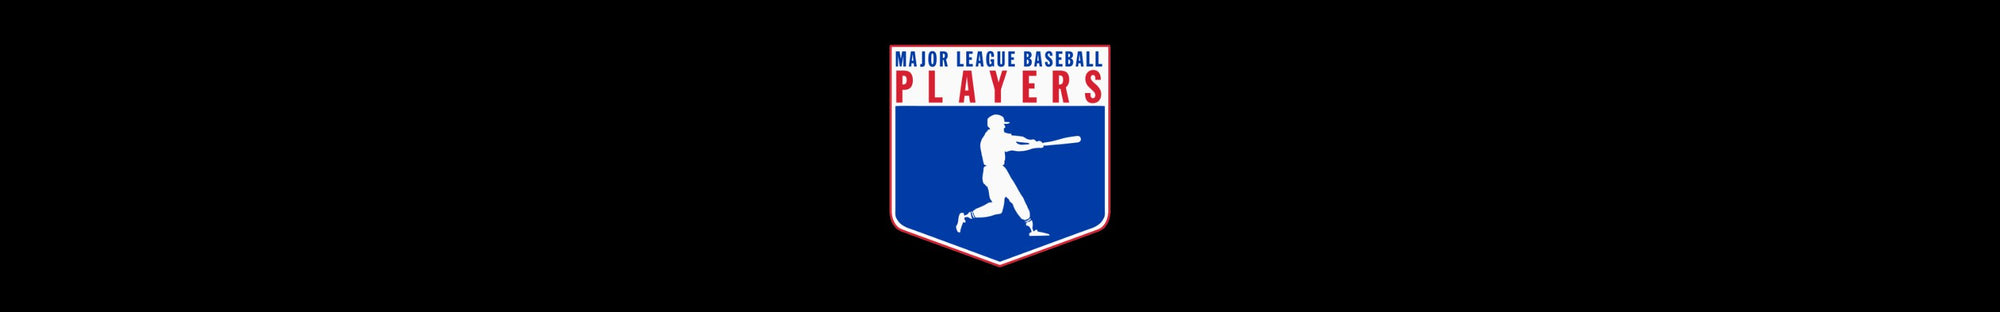 MLB PLAYERS - WHOLESALE